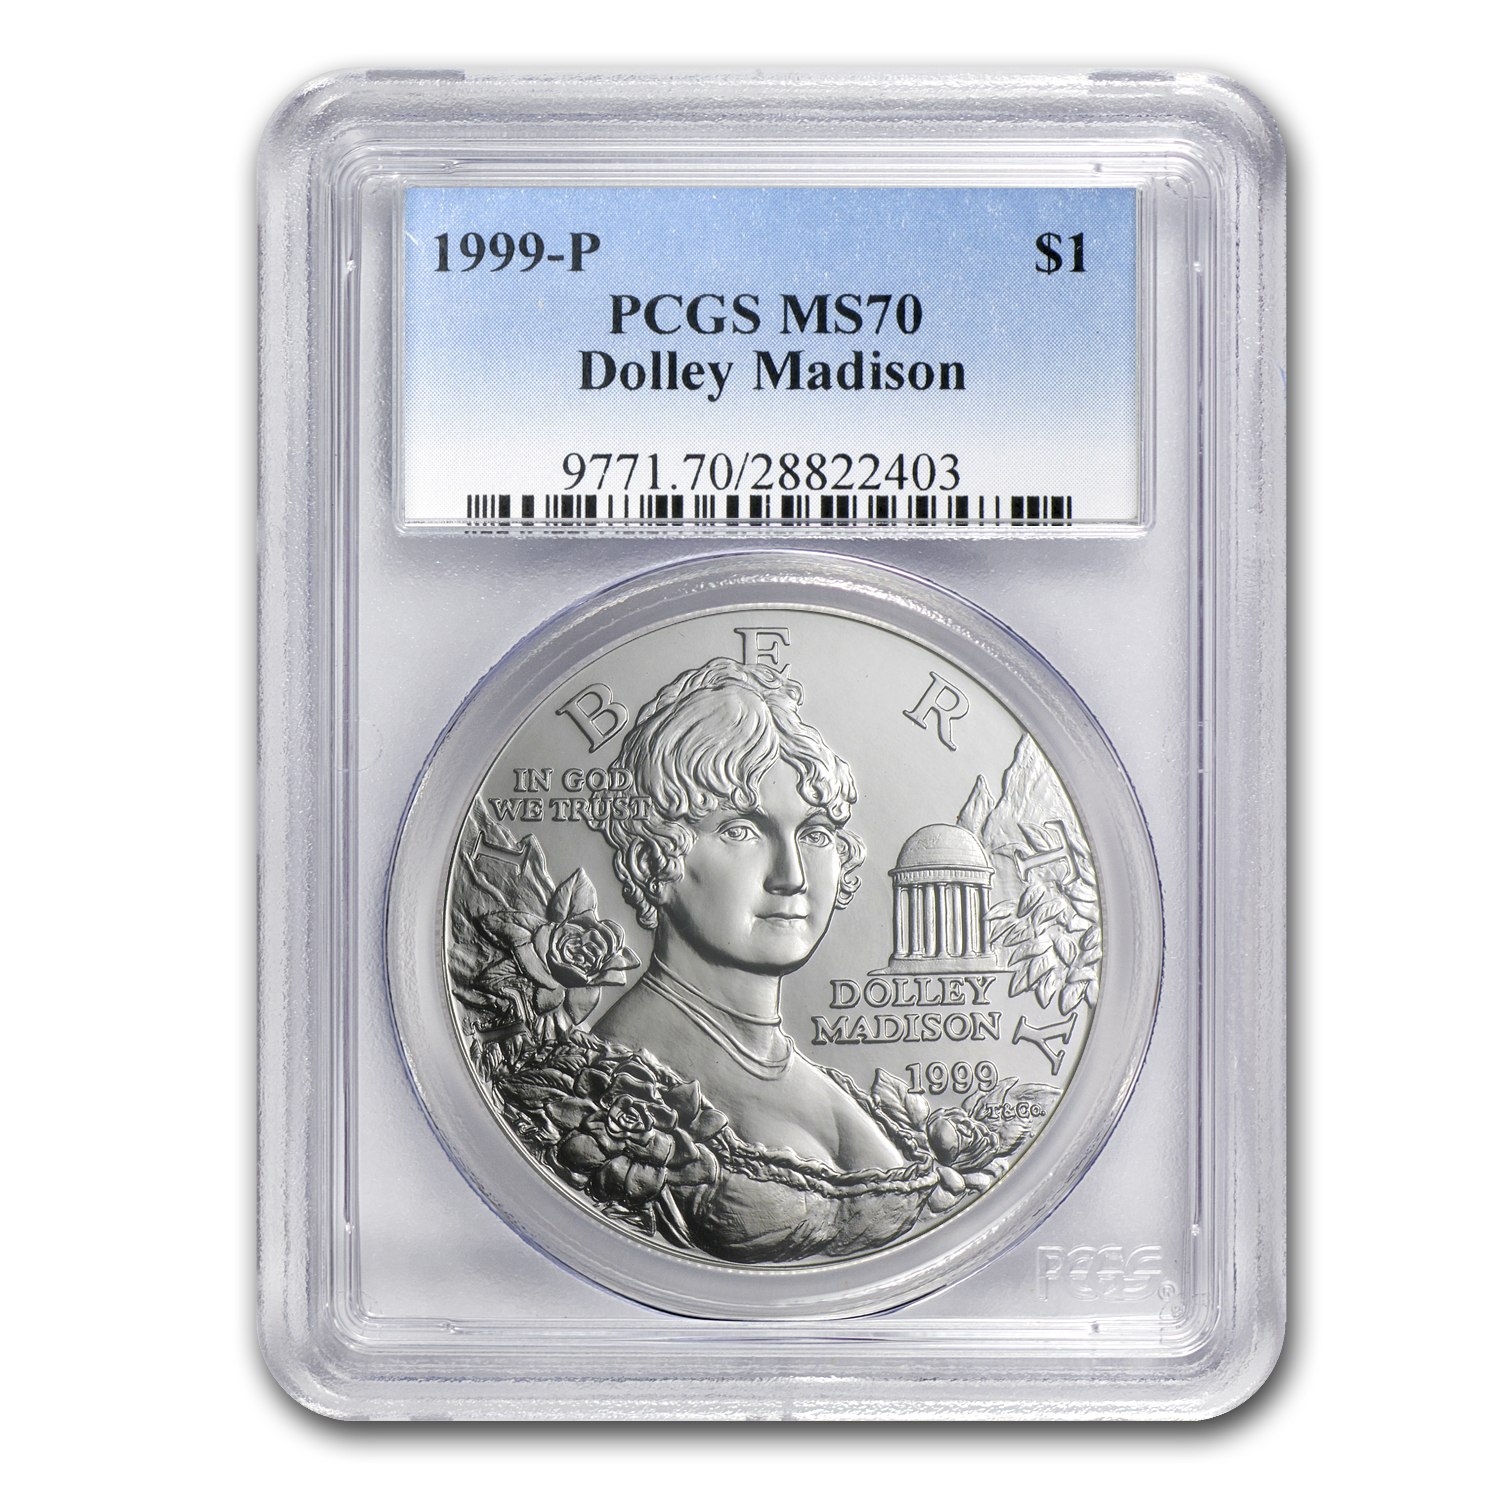 1999-P Dolley Madison $1 Silver Commem MS-70 PCGS